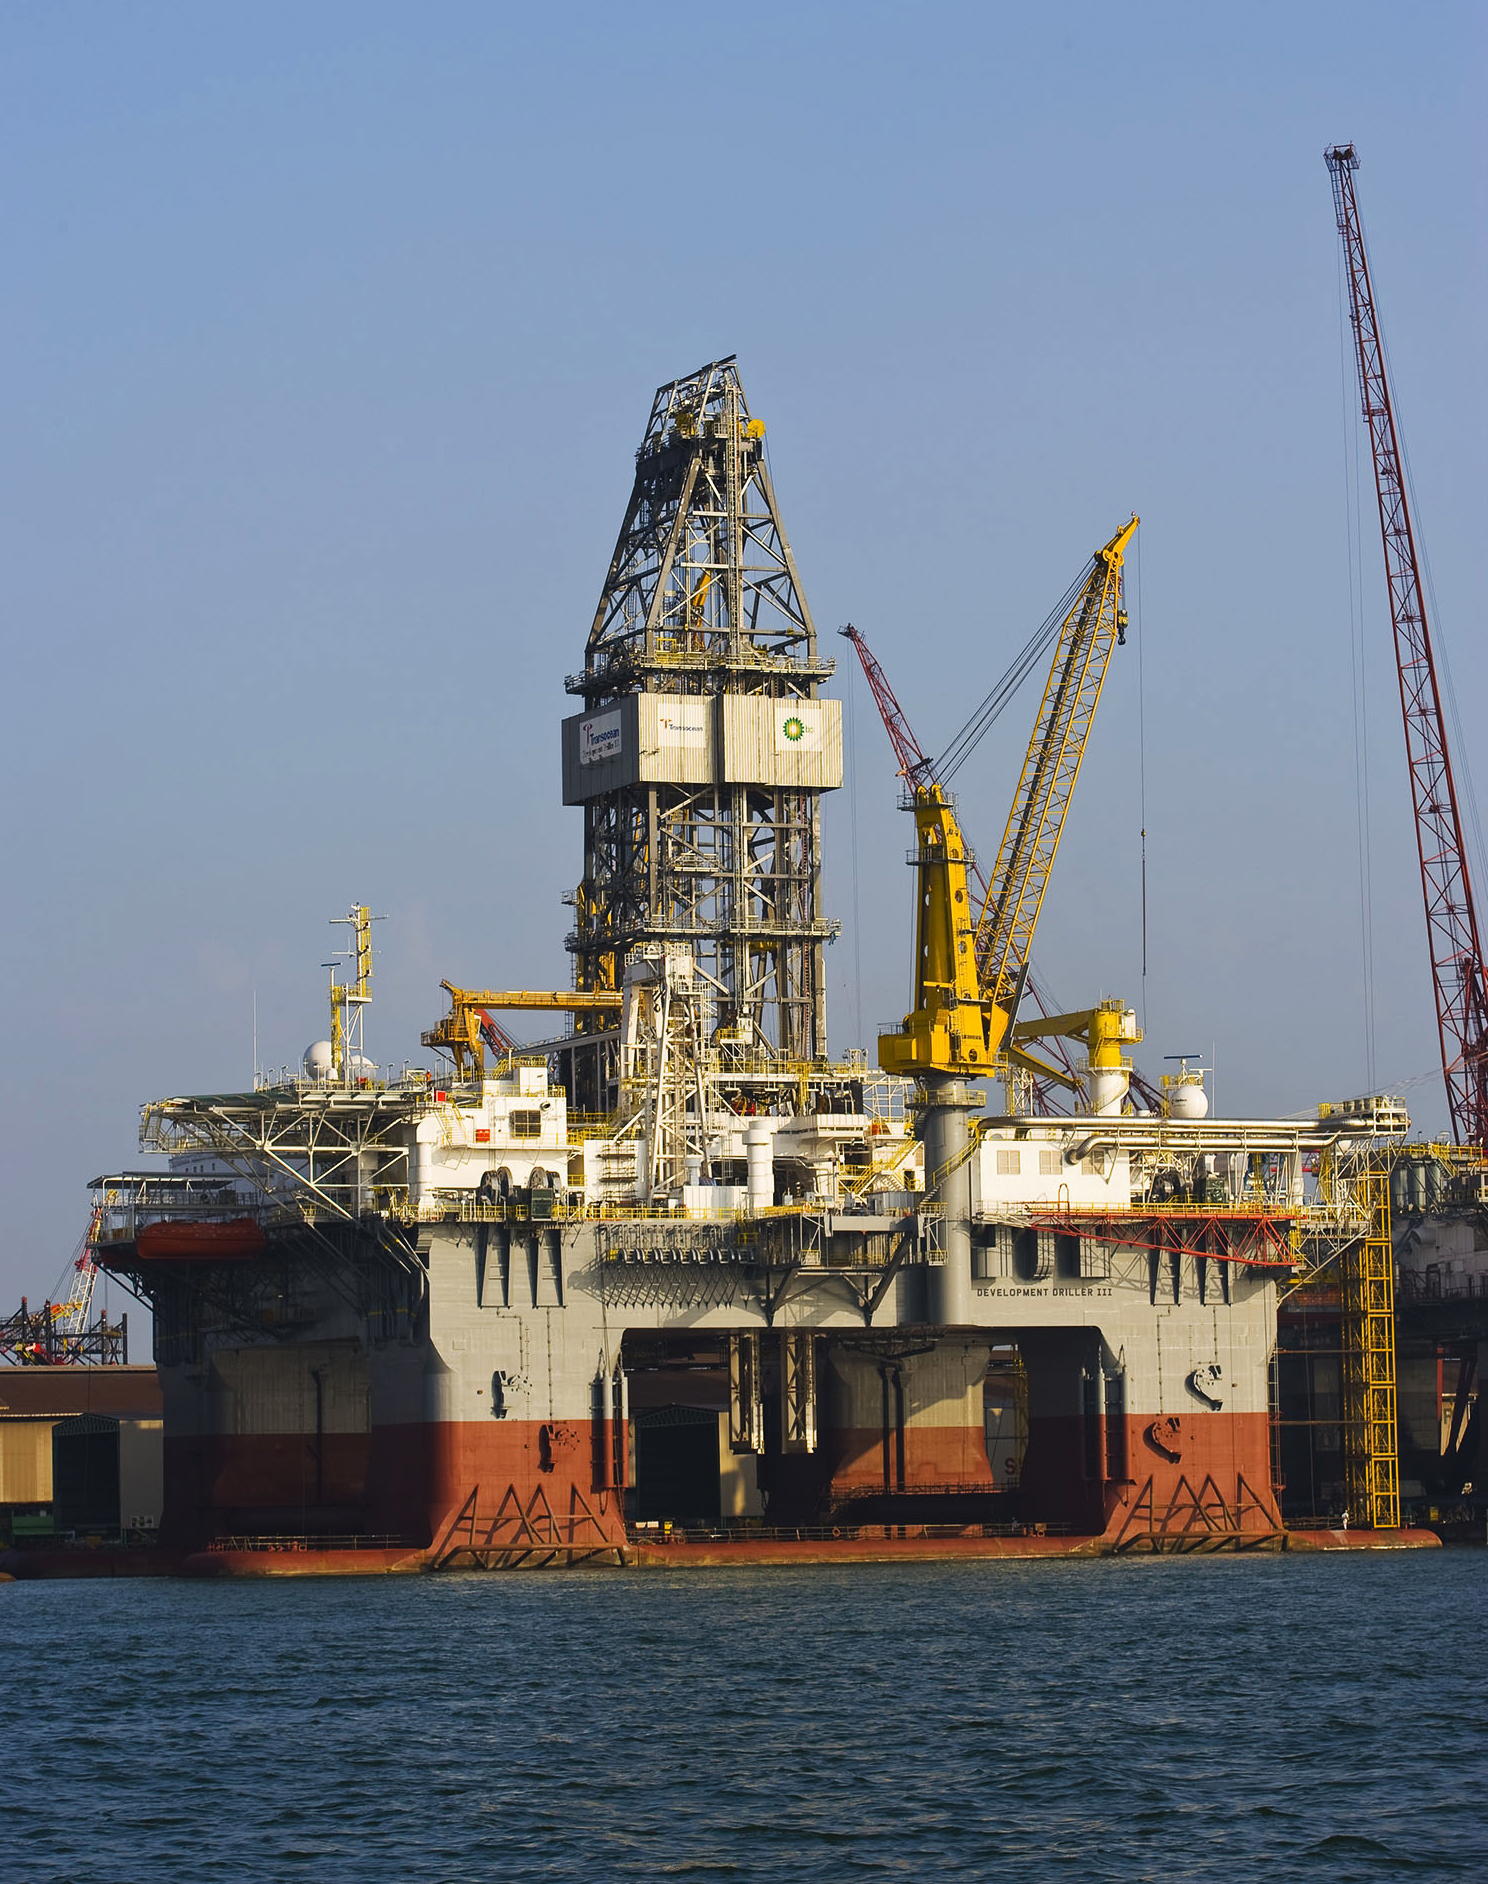 The ultra-deepwater semisubmersible rig Development Drill III begins operations for drilling a relief well in the Gulf of Mexico in this May 3 file ph...